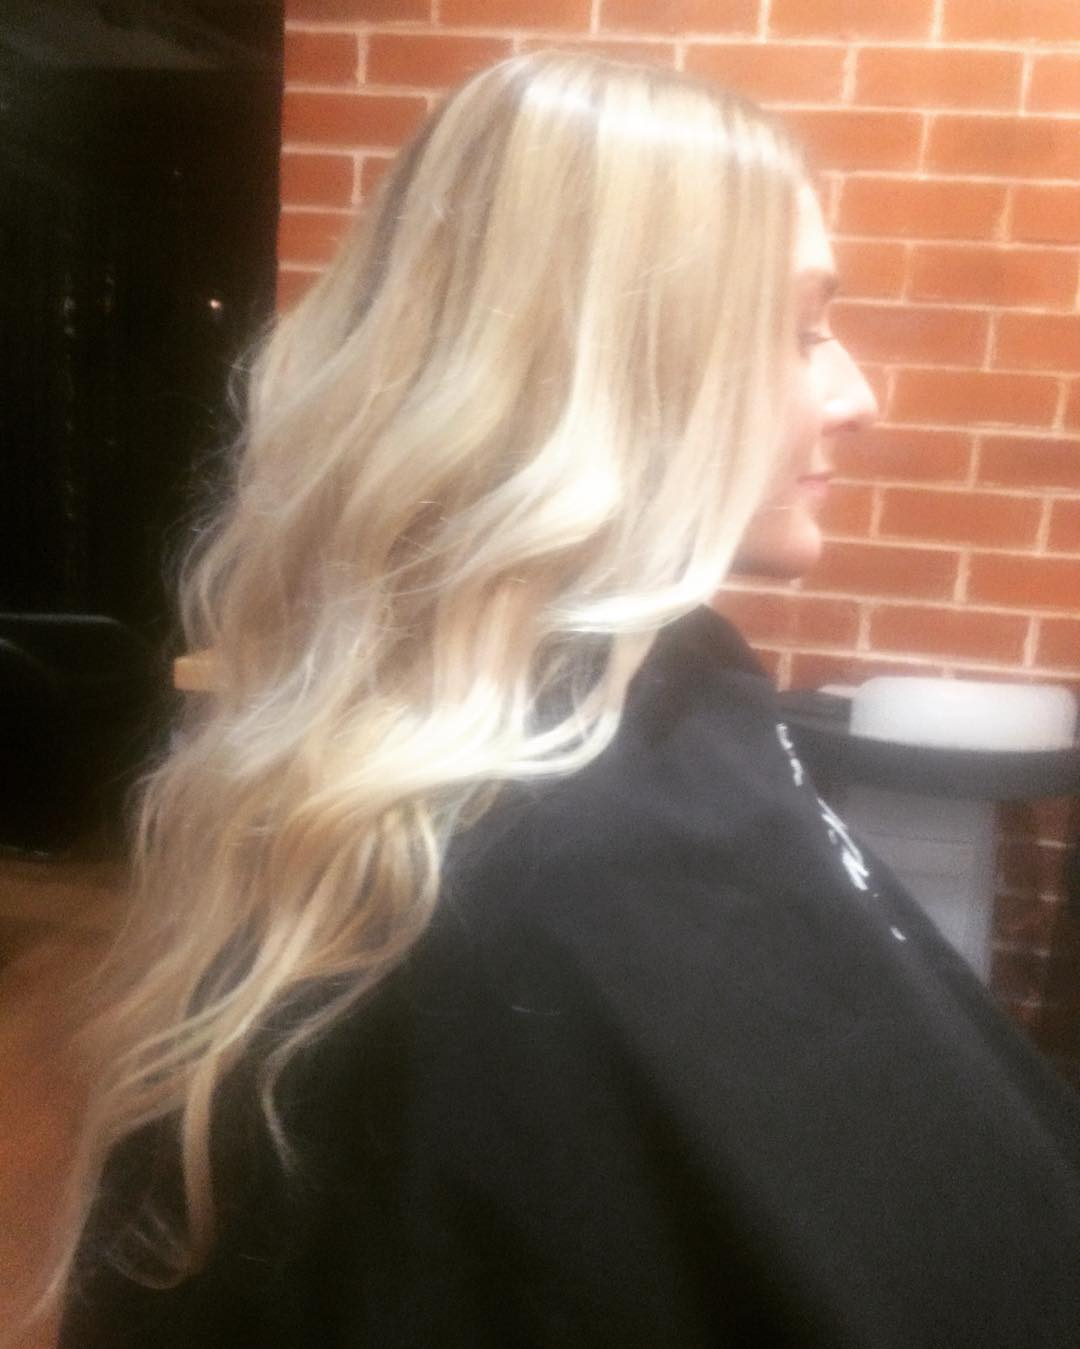 curled bleached blond hair